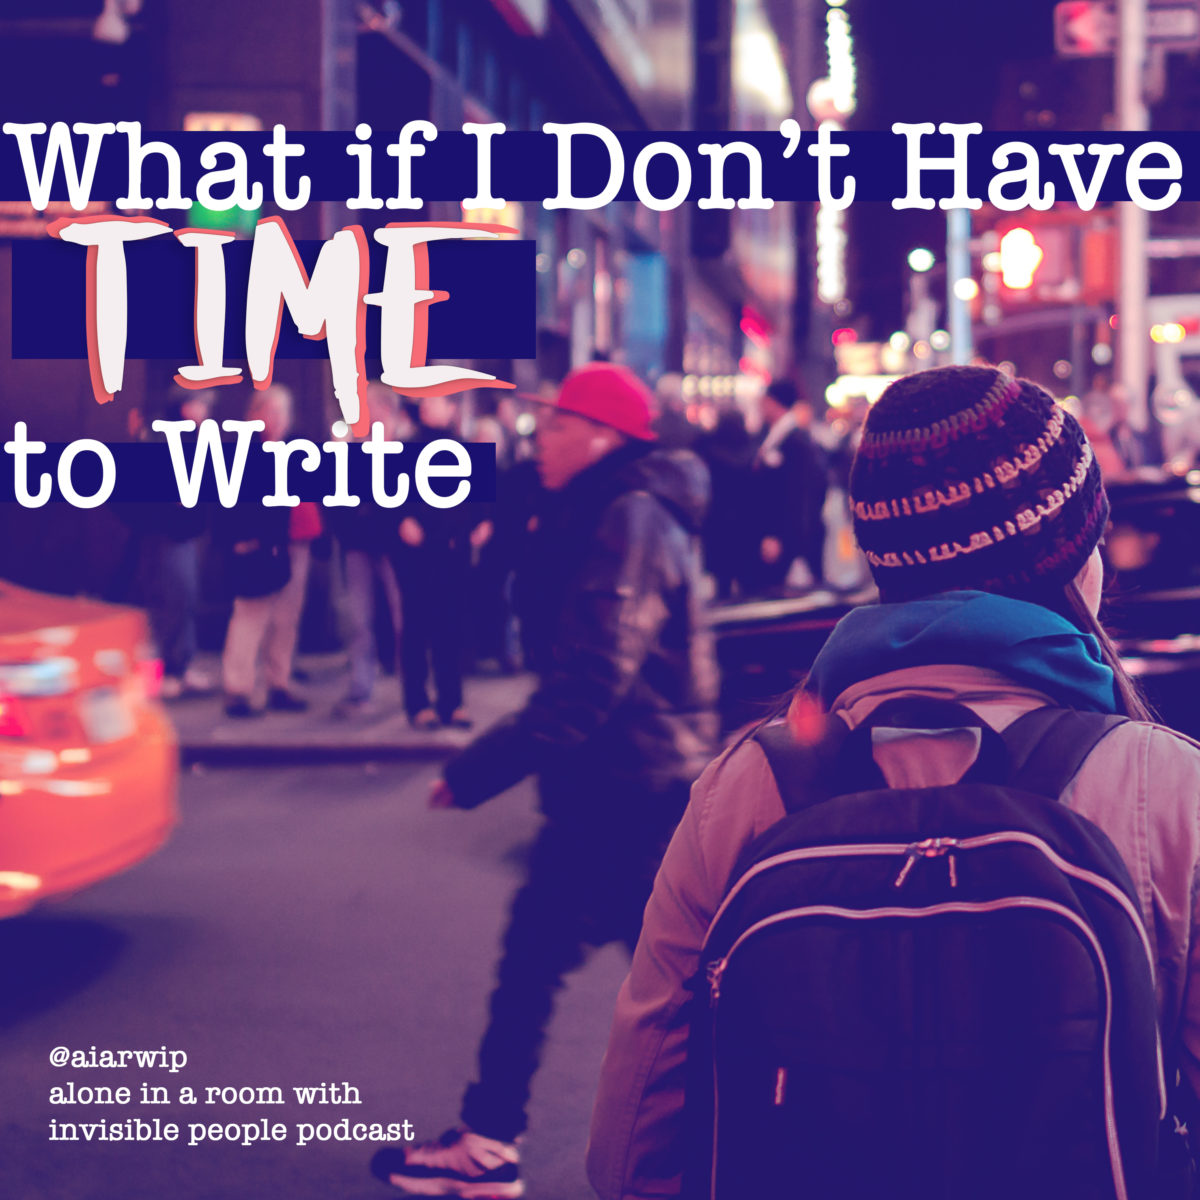 Episode 26: What if I Don't Have Time to Write?